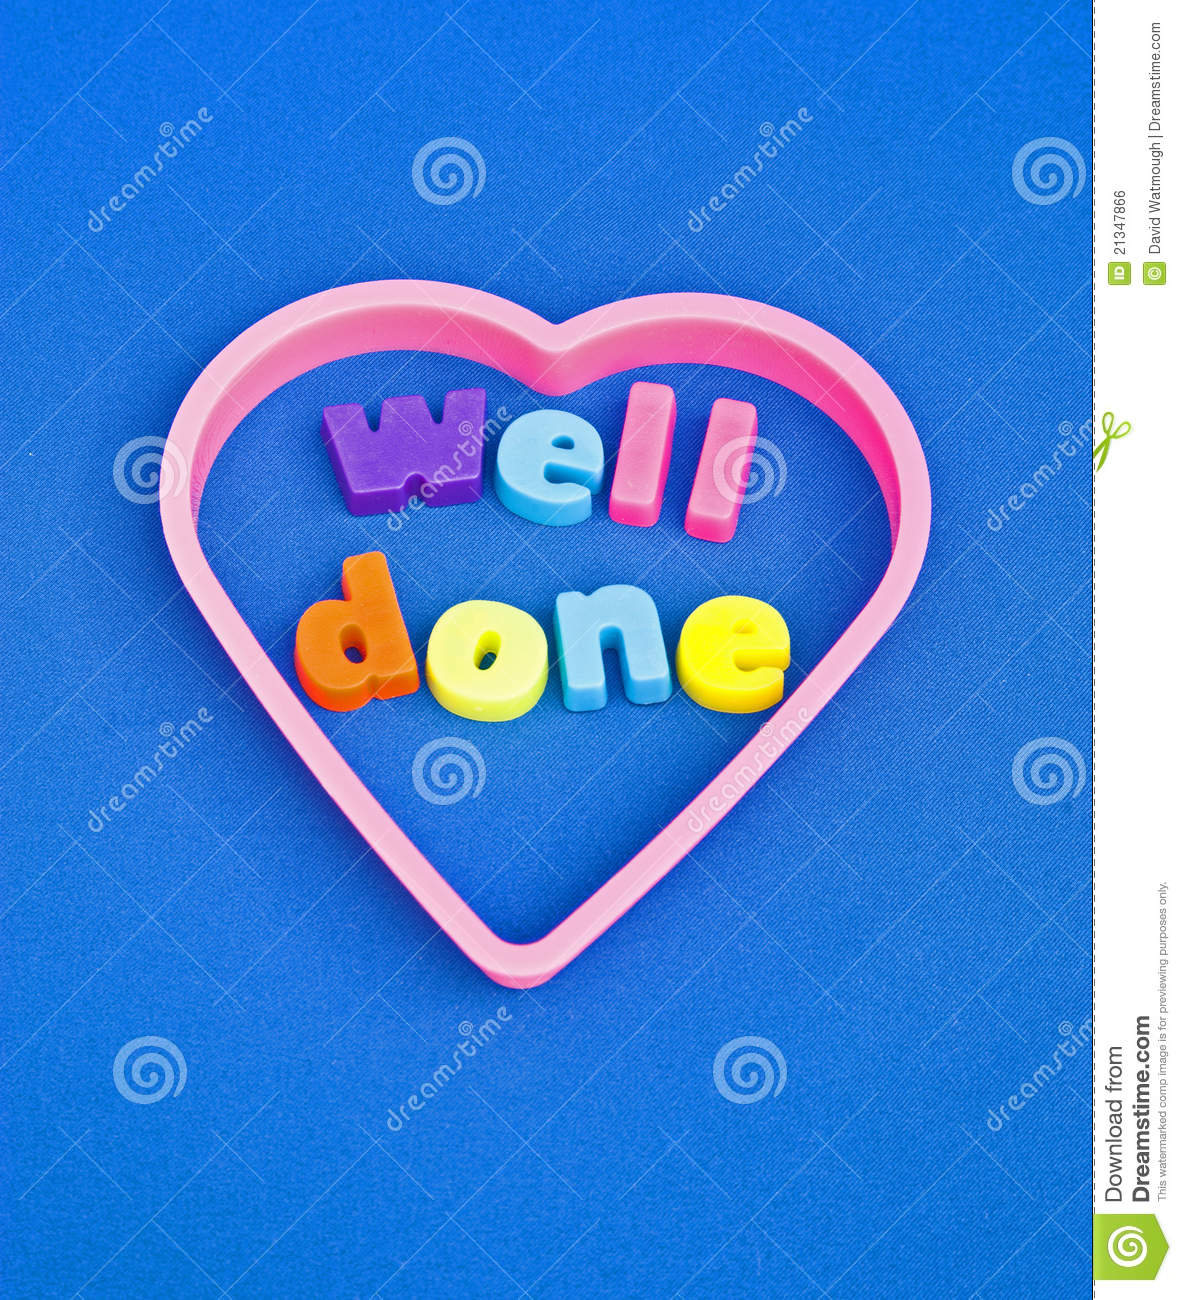 well done   congratulations  stock photo